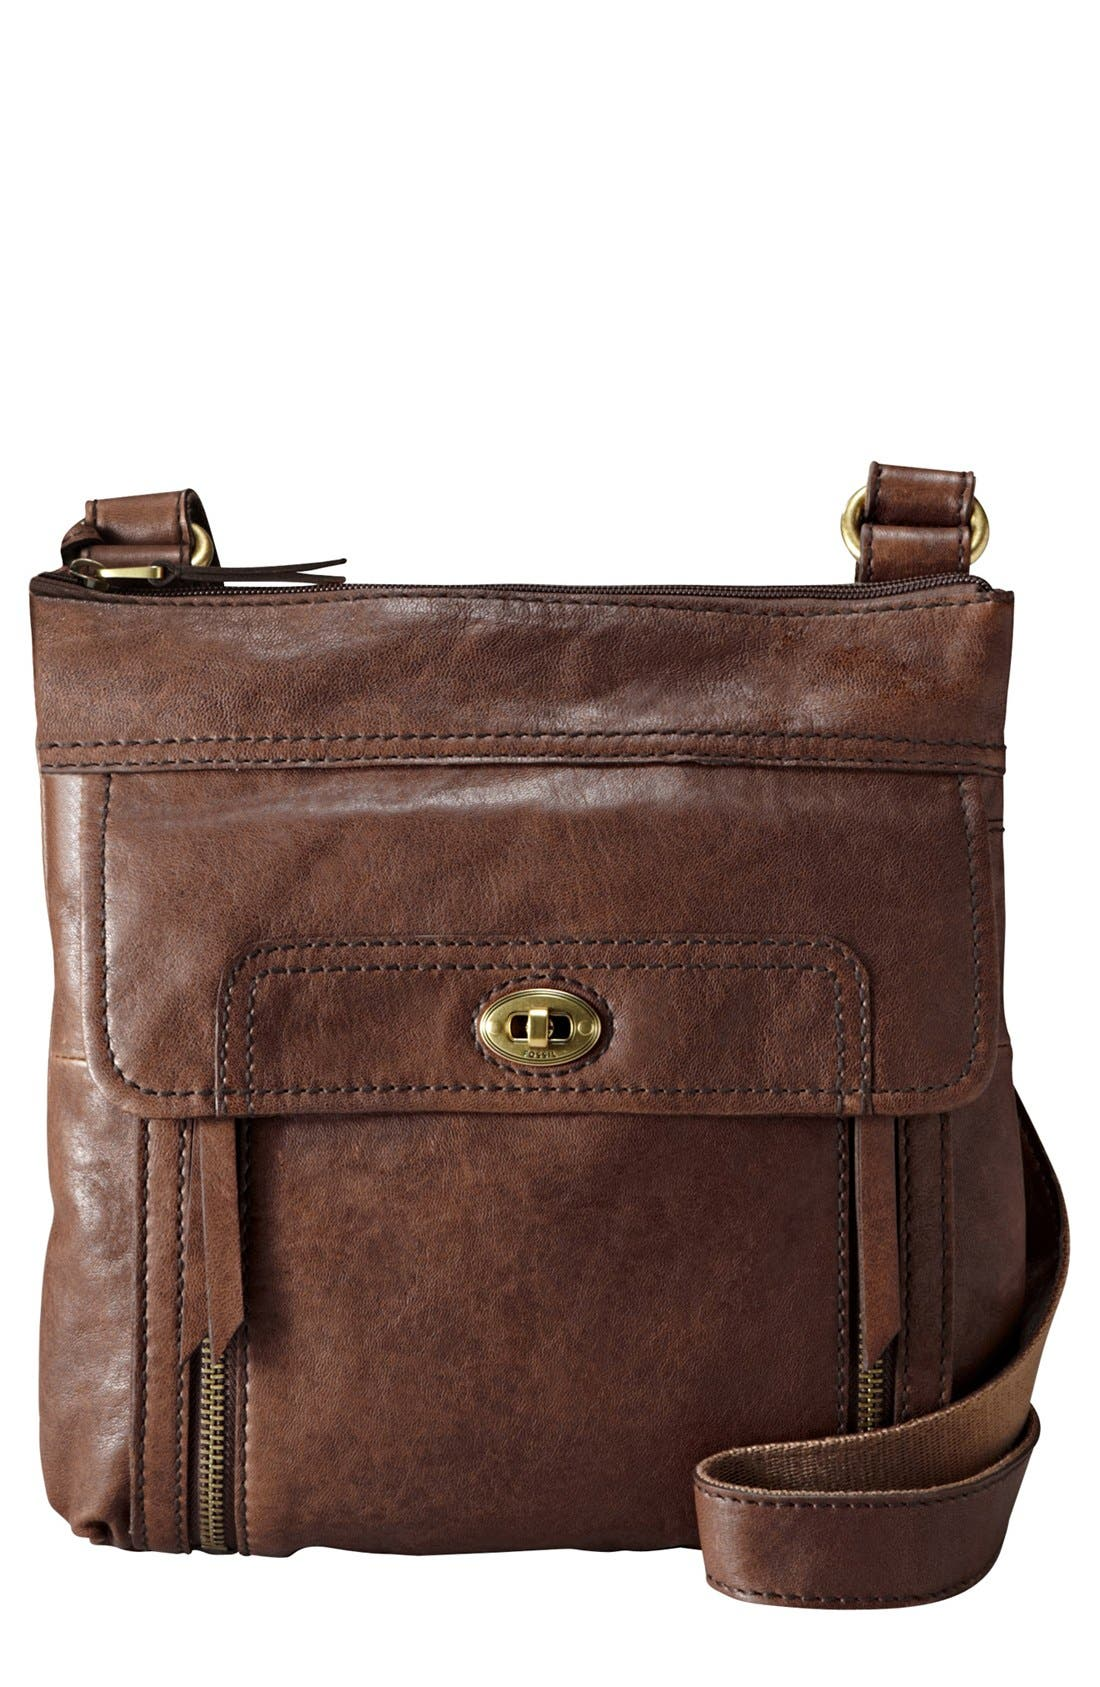 Alternate Image 1 Selected - Fossil 'Stanton Traveler' Crossbody Bag